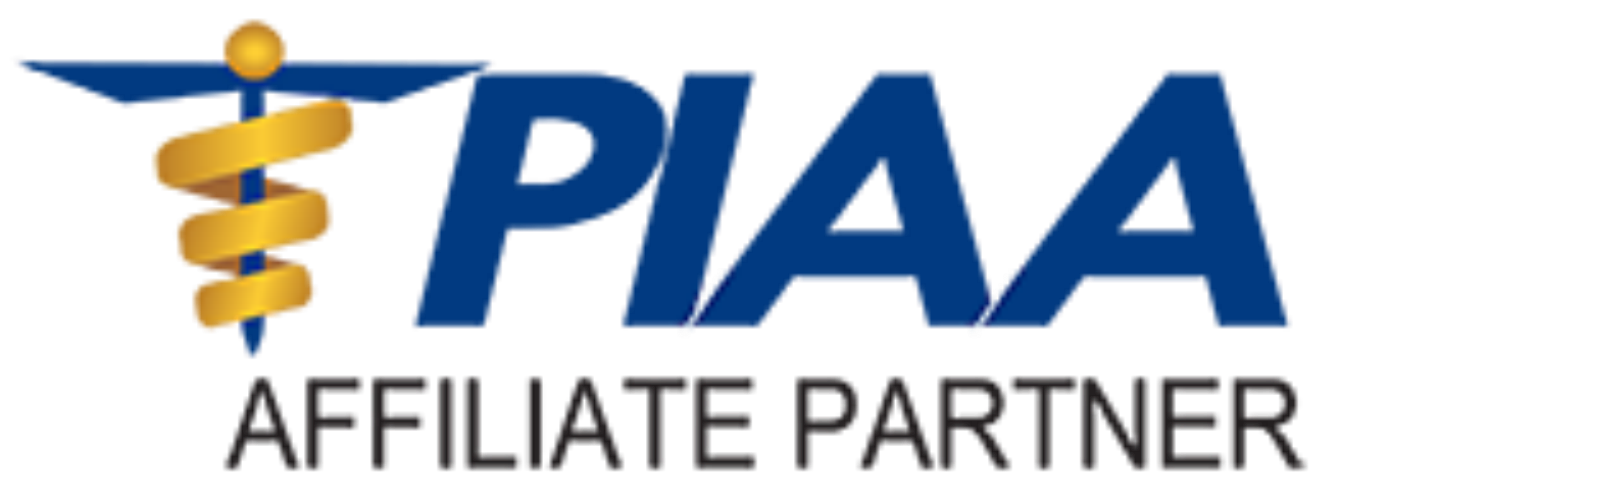 https://www.piaa.us/wcm/About_PIAA/FAQs/wcm/_About/FAQs.aspx